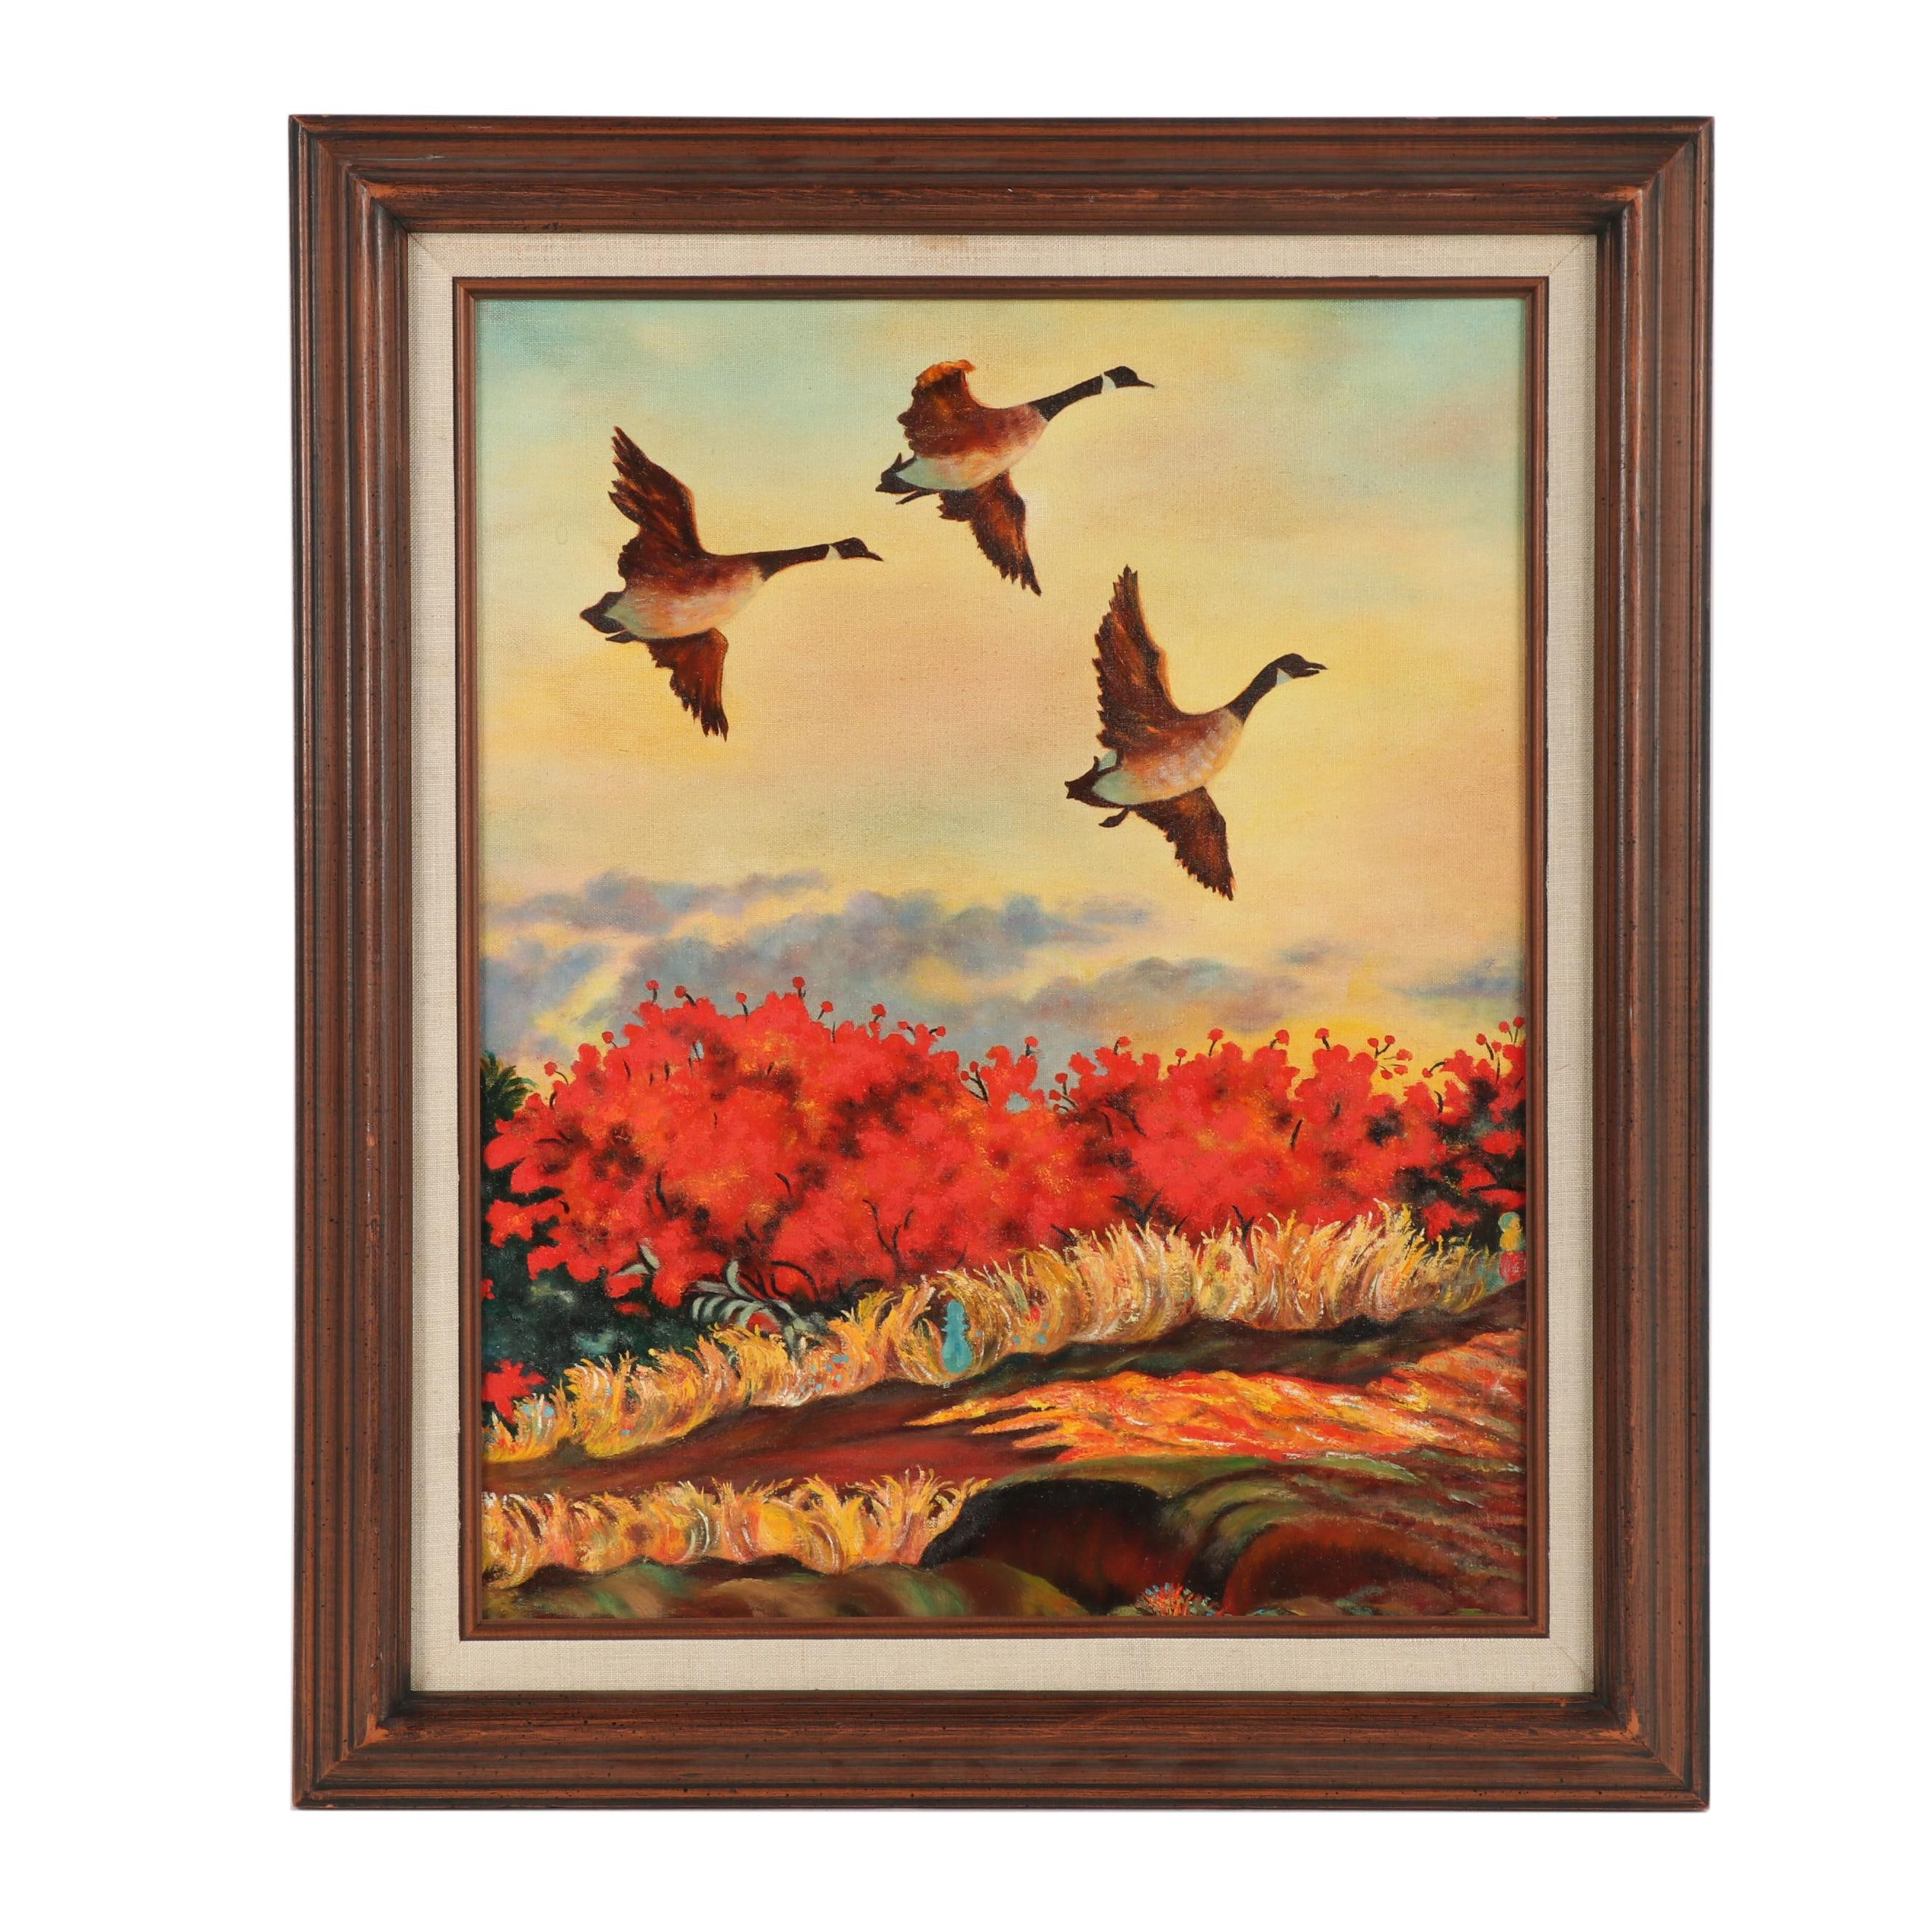 Late 20th Century Autumn Landscape with Canadian Geese Oil Painting